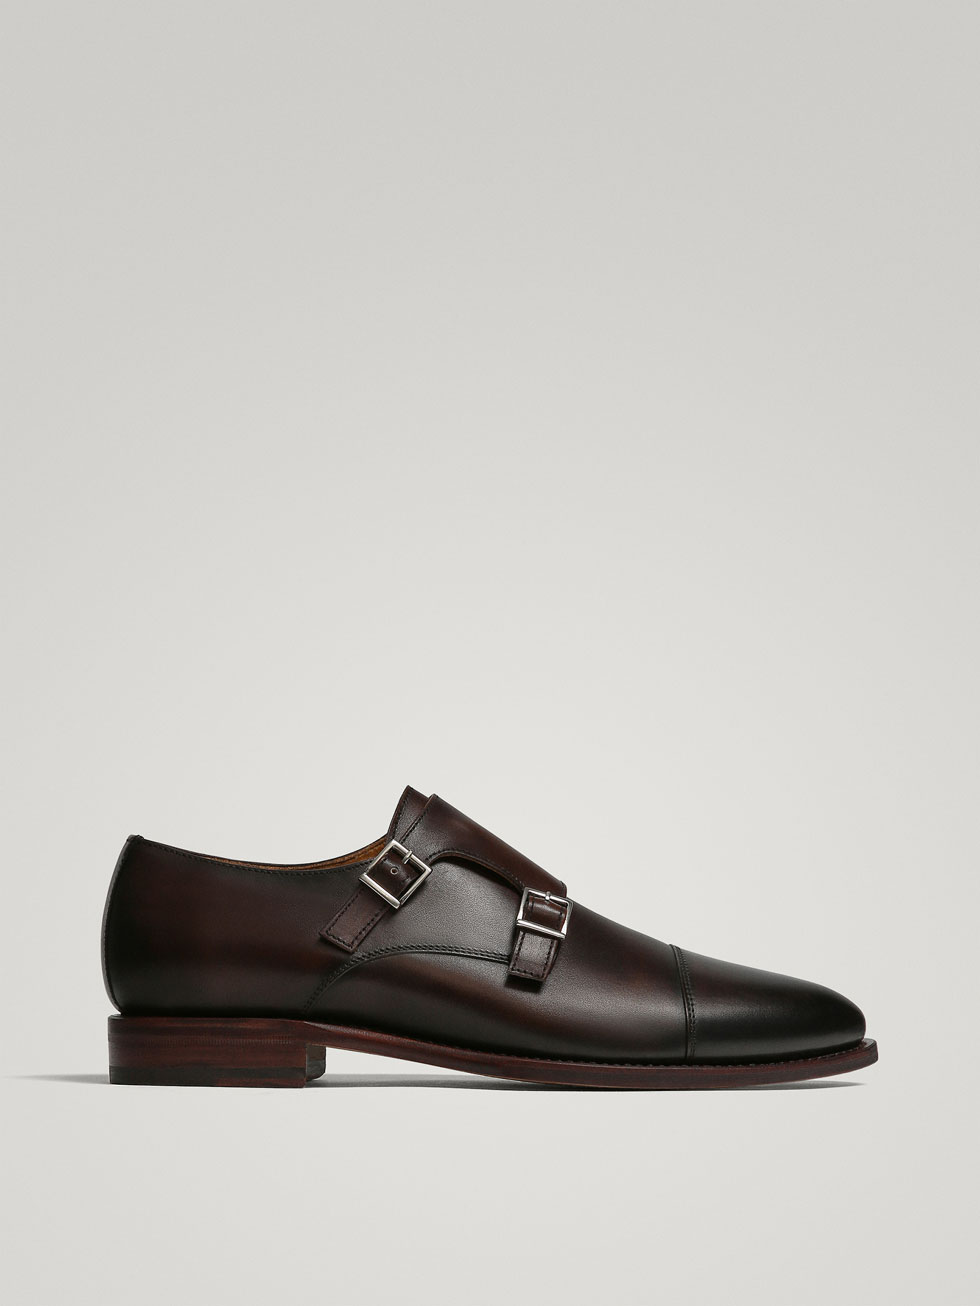 Brown Embossed Leather Goodyear Brogues by Massimo Dutti